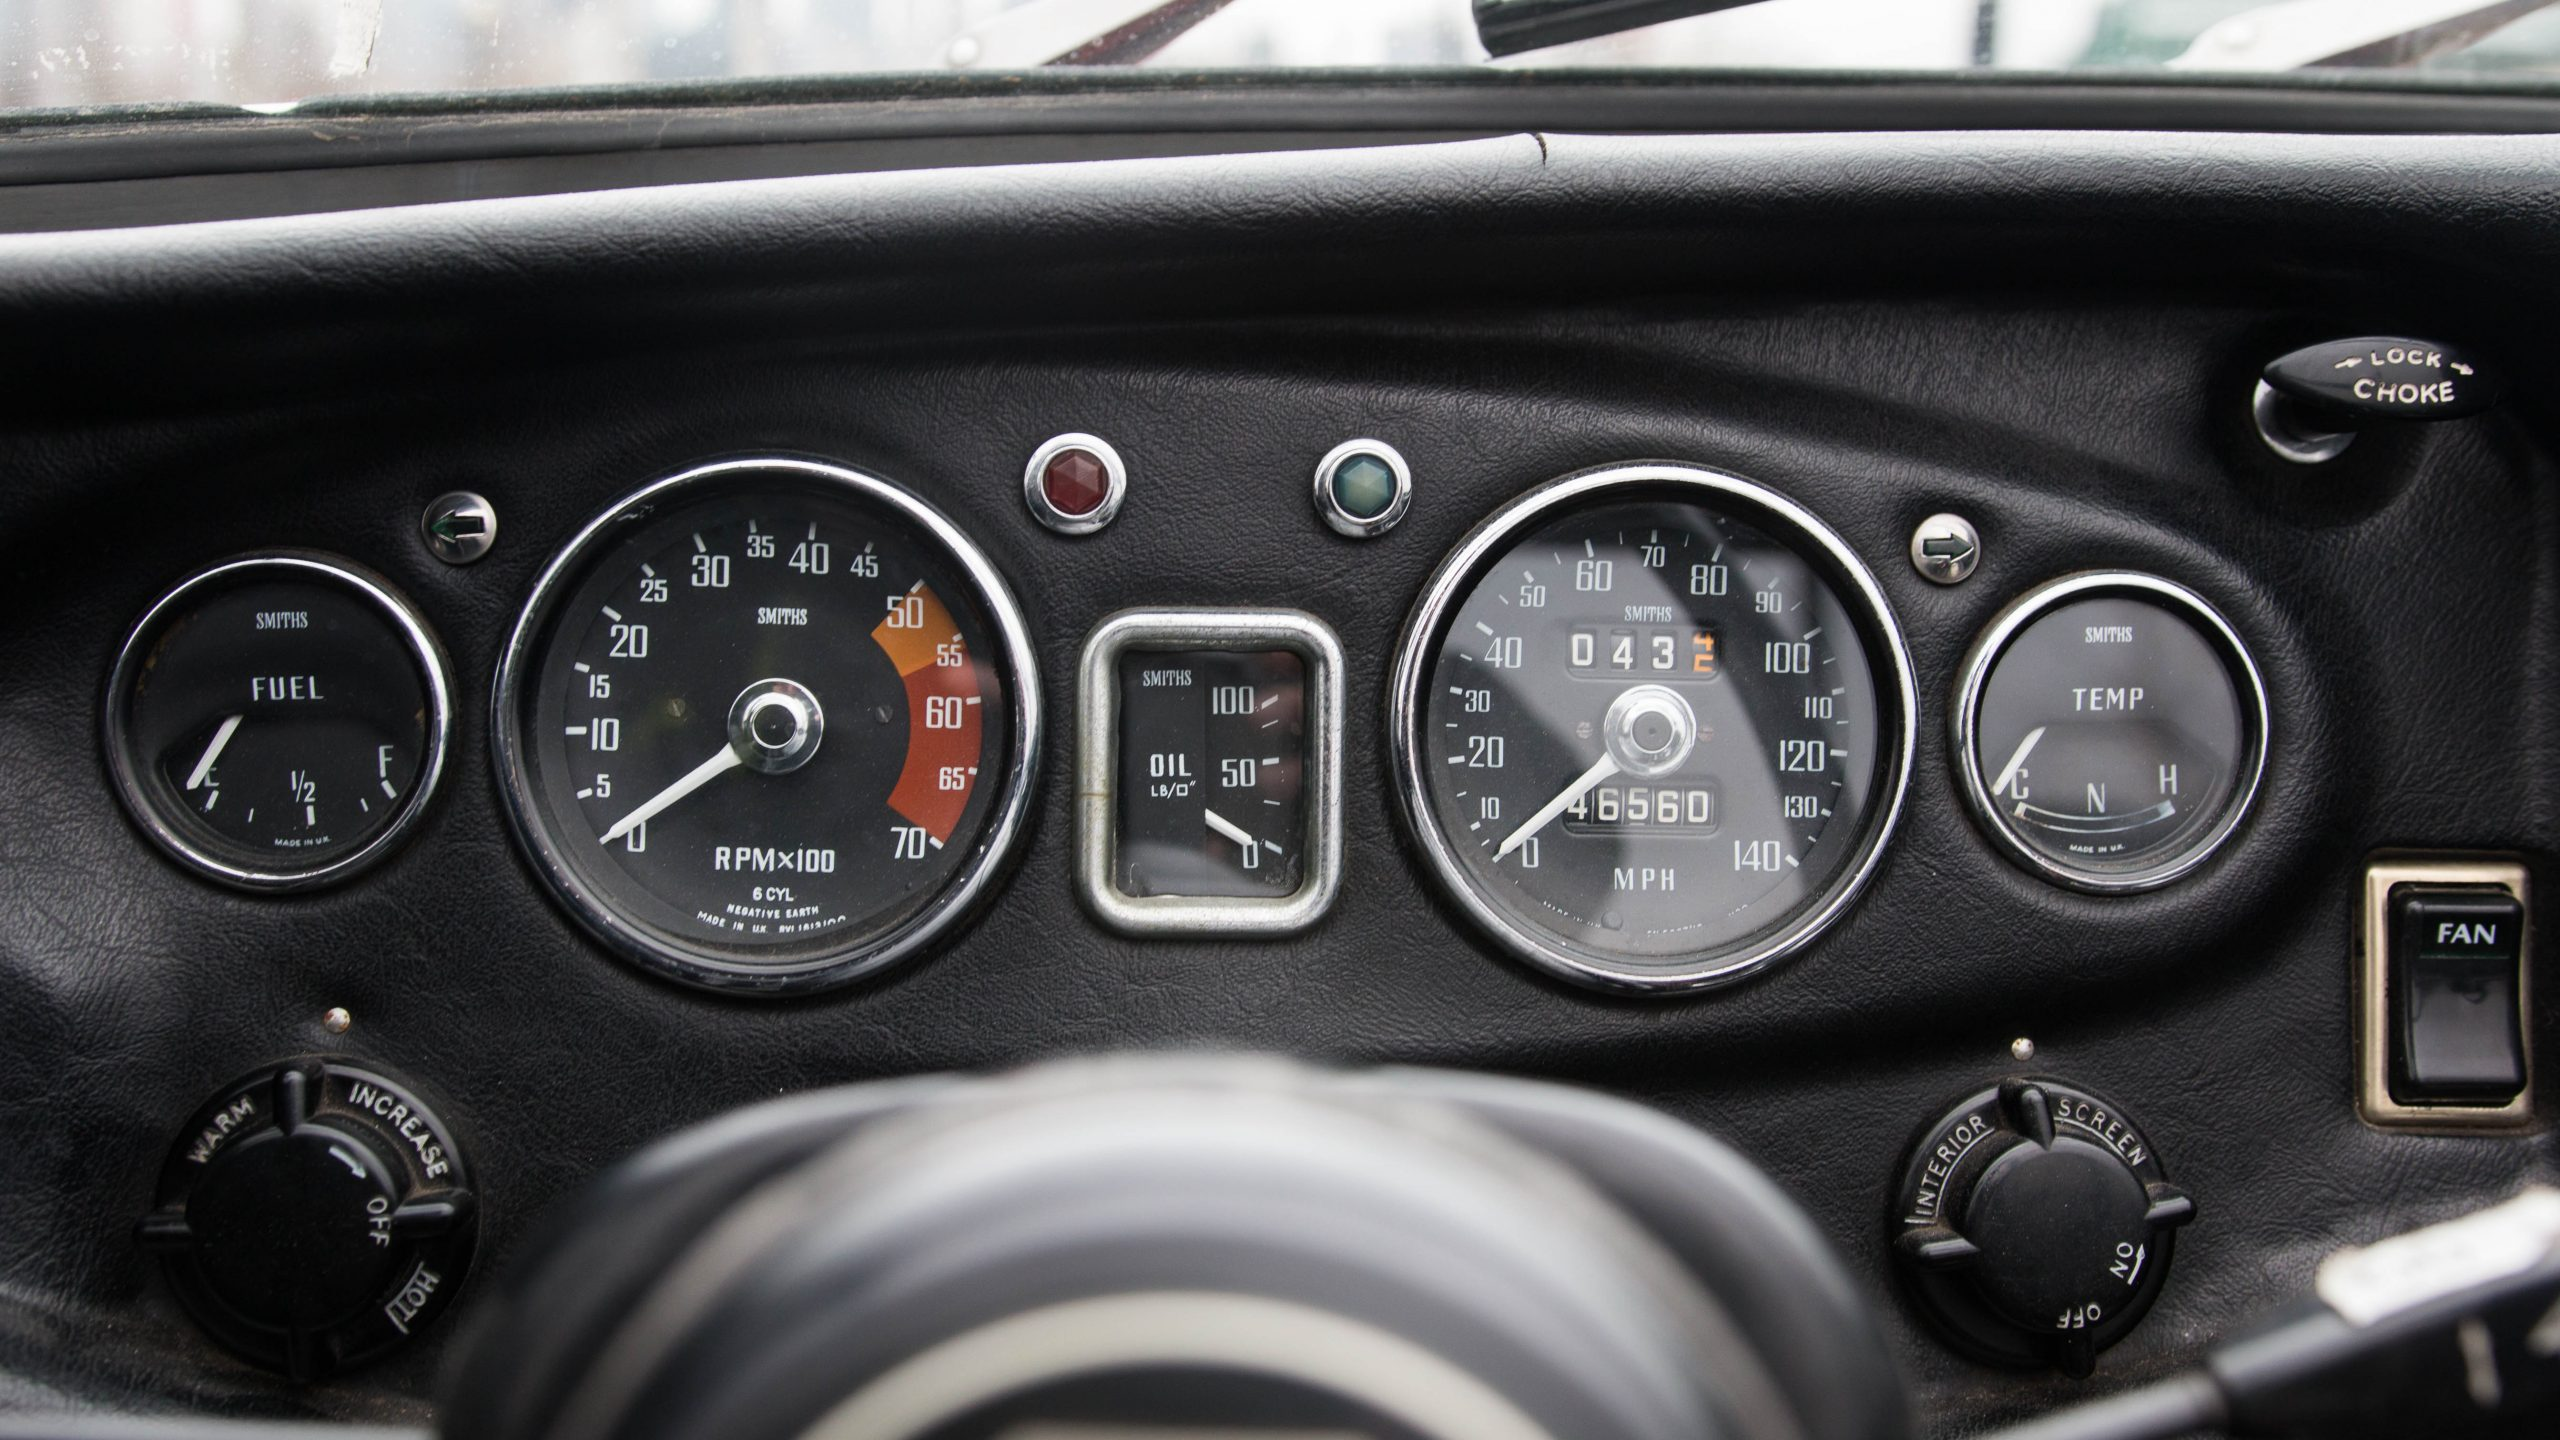 1969 MG MGC gauges detail